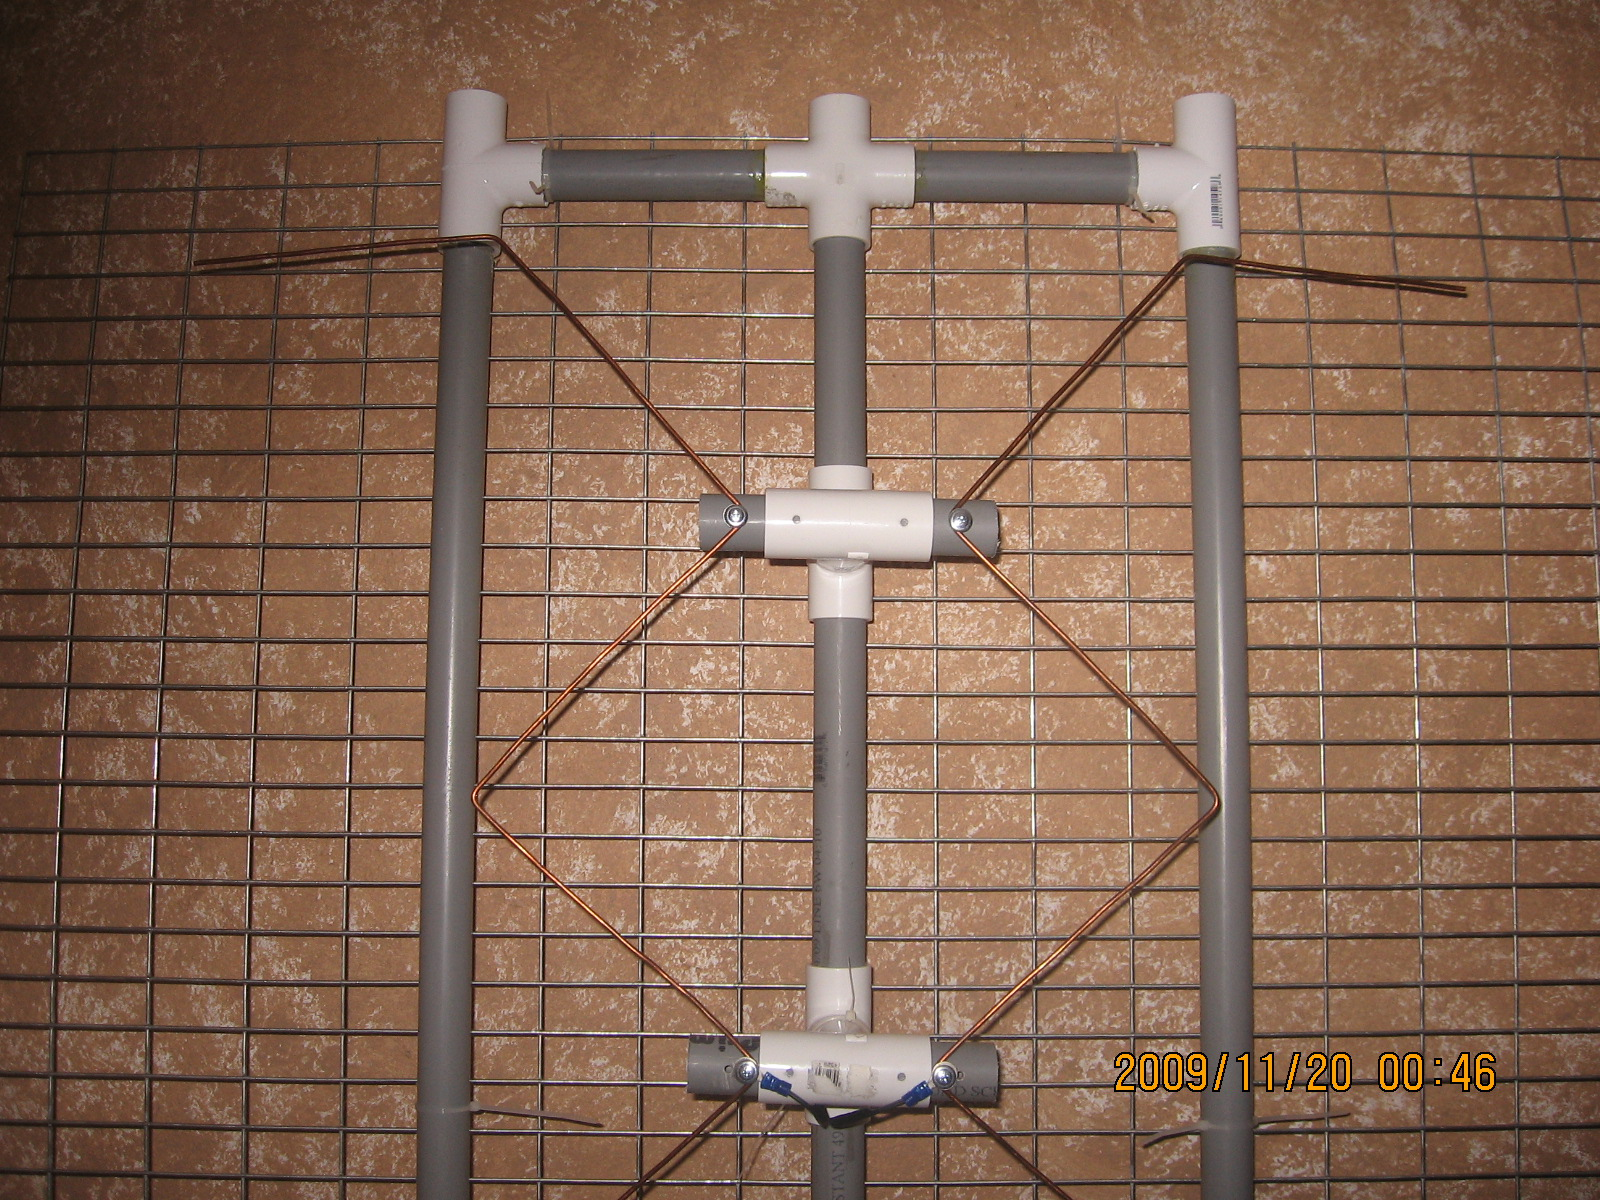 My Gray Hoverman Mayhem Creations 8 Bay Antenna Wiring Diagram New With Reflector Only The 1 Gap Hasnt Been Cut Yet